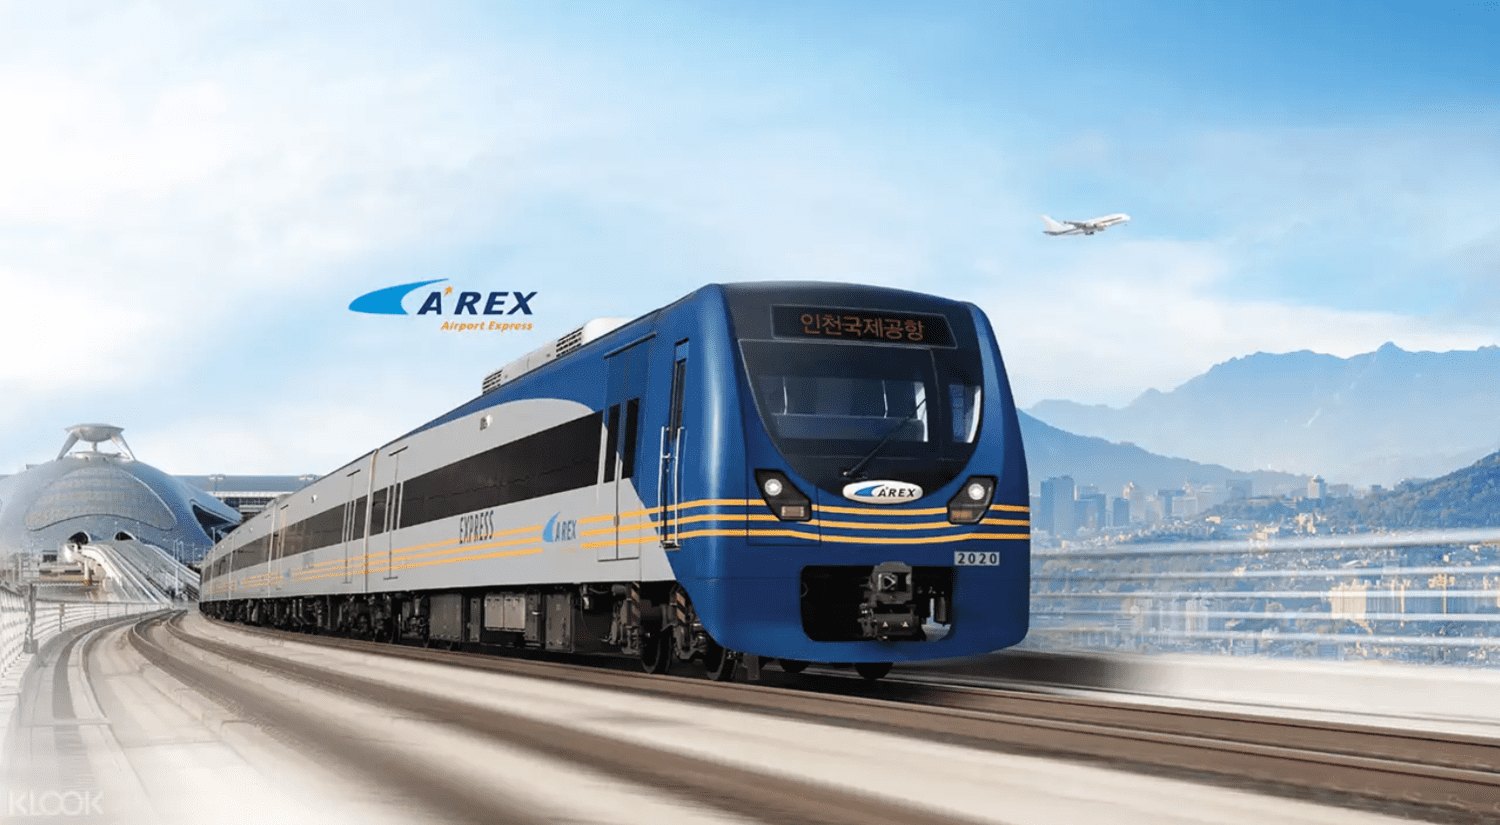 AREX Express Train for Incheon Airport to Seoul. Screengrab from  Klook